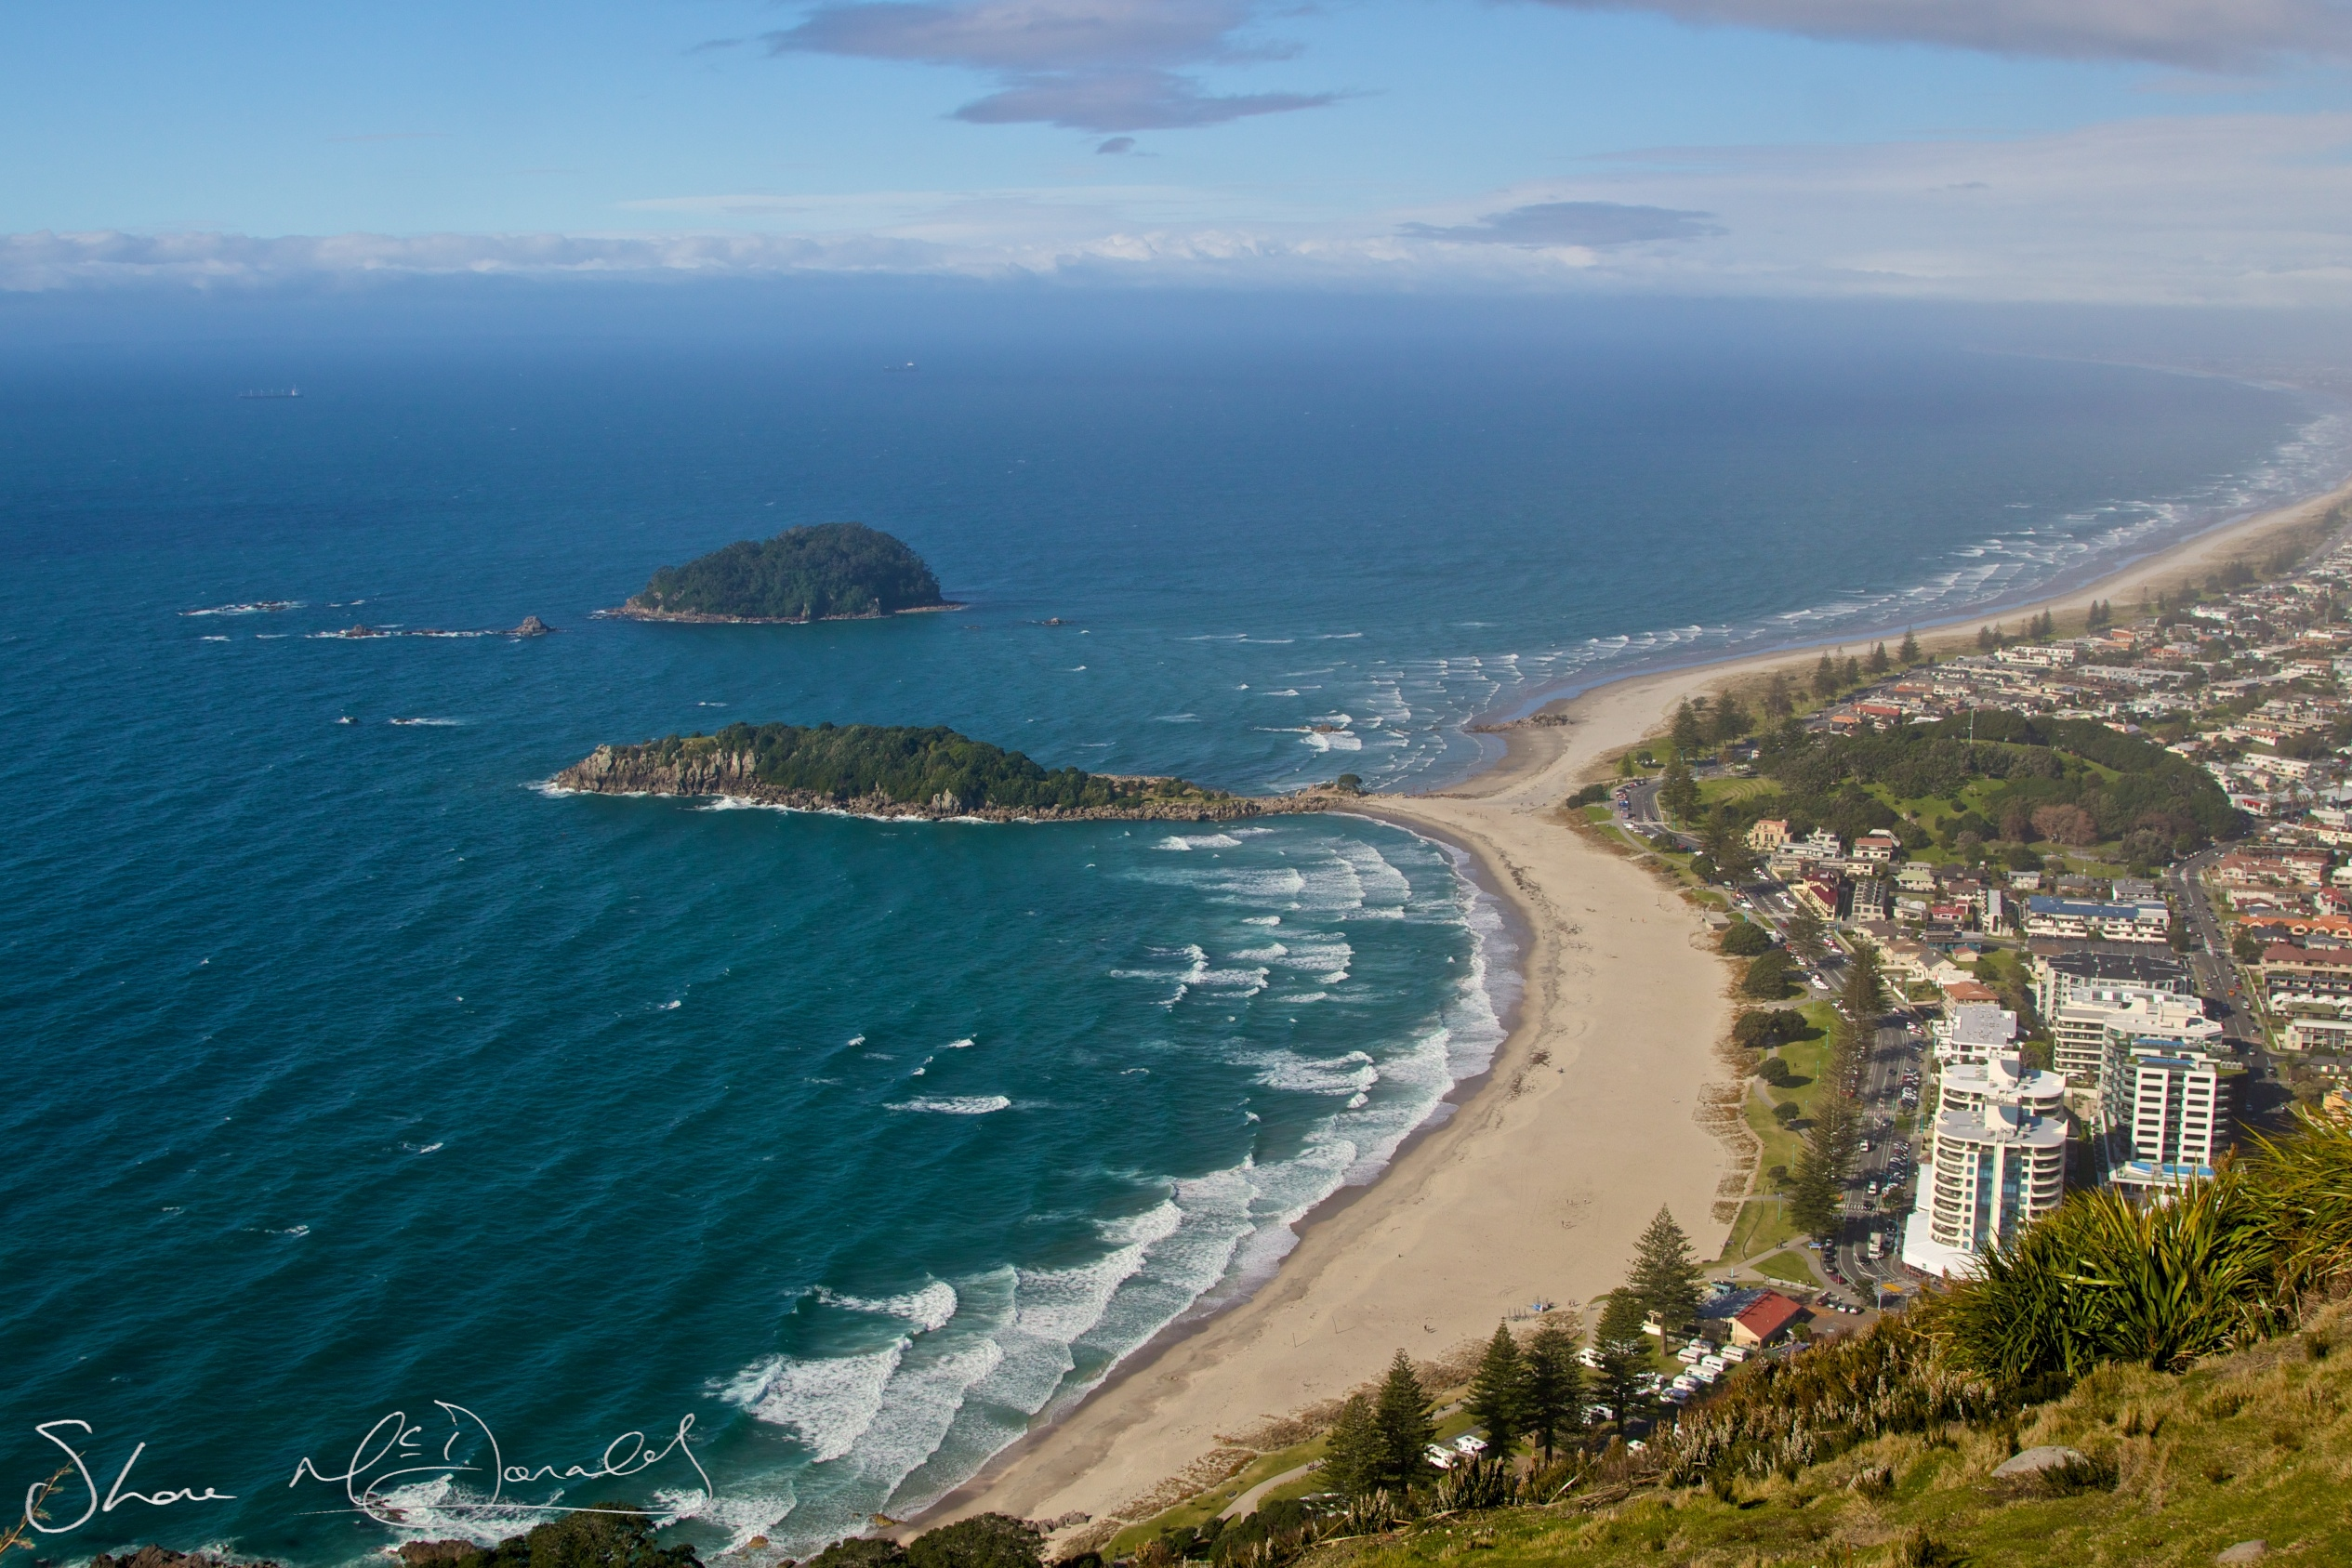 The view from Mount Maunganaui